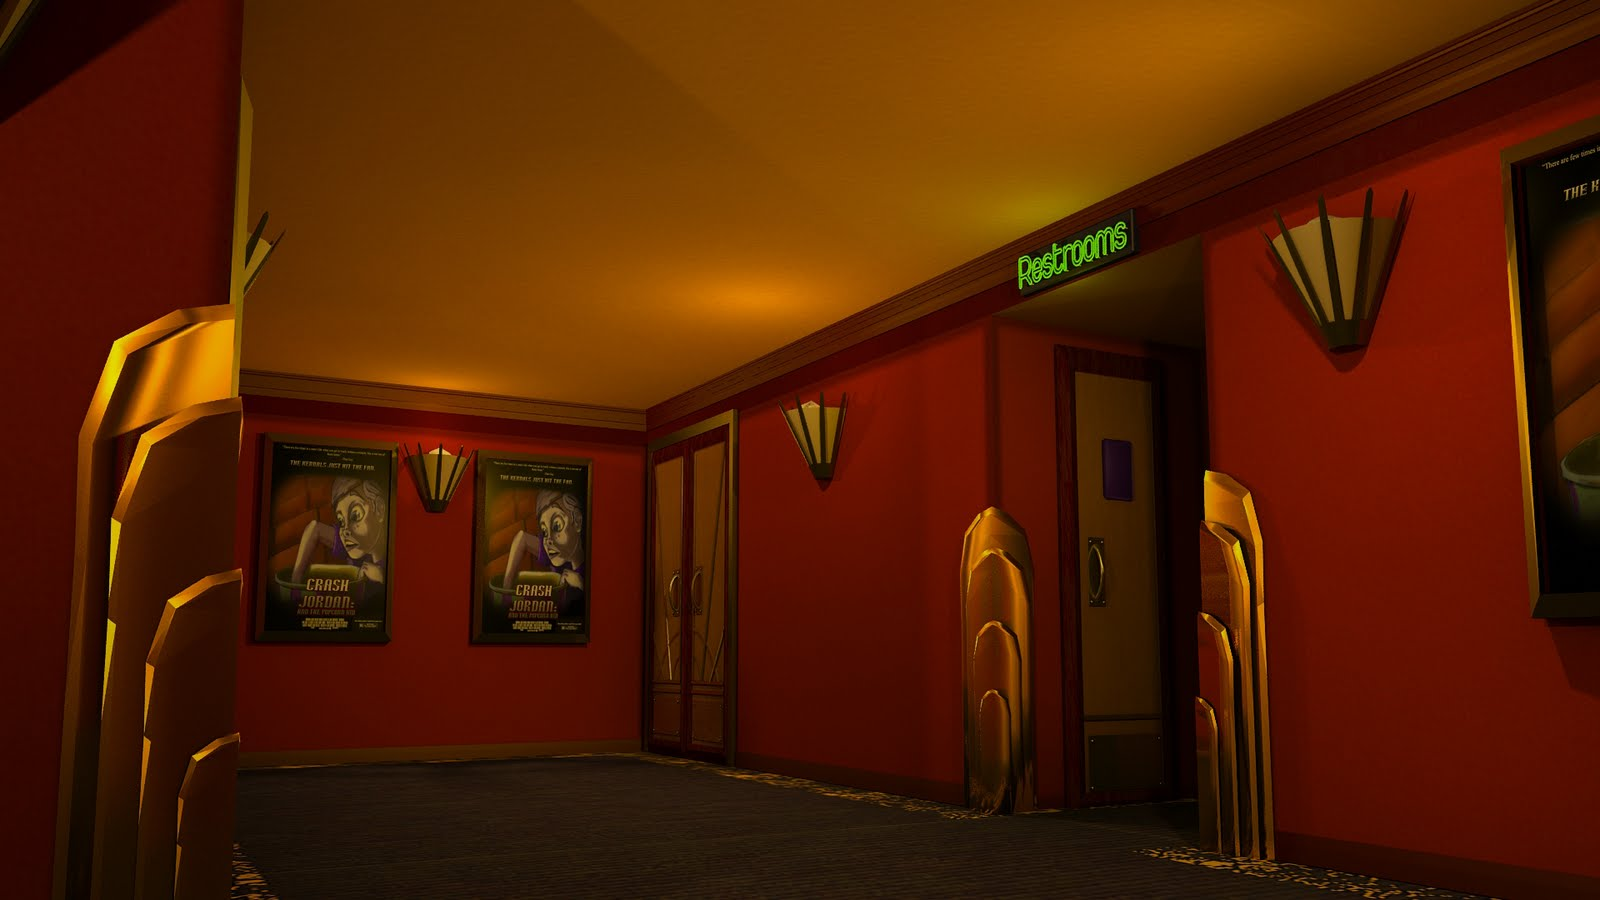 Art Deco Movie Theatre Wallpaper 1080p 1600 X 900 Art